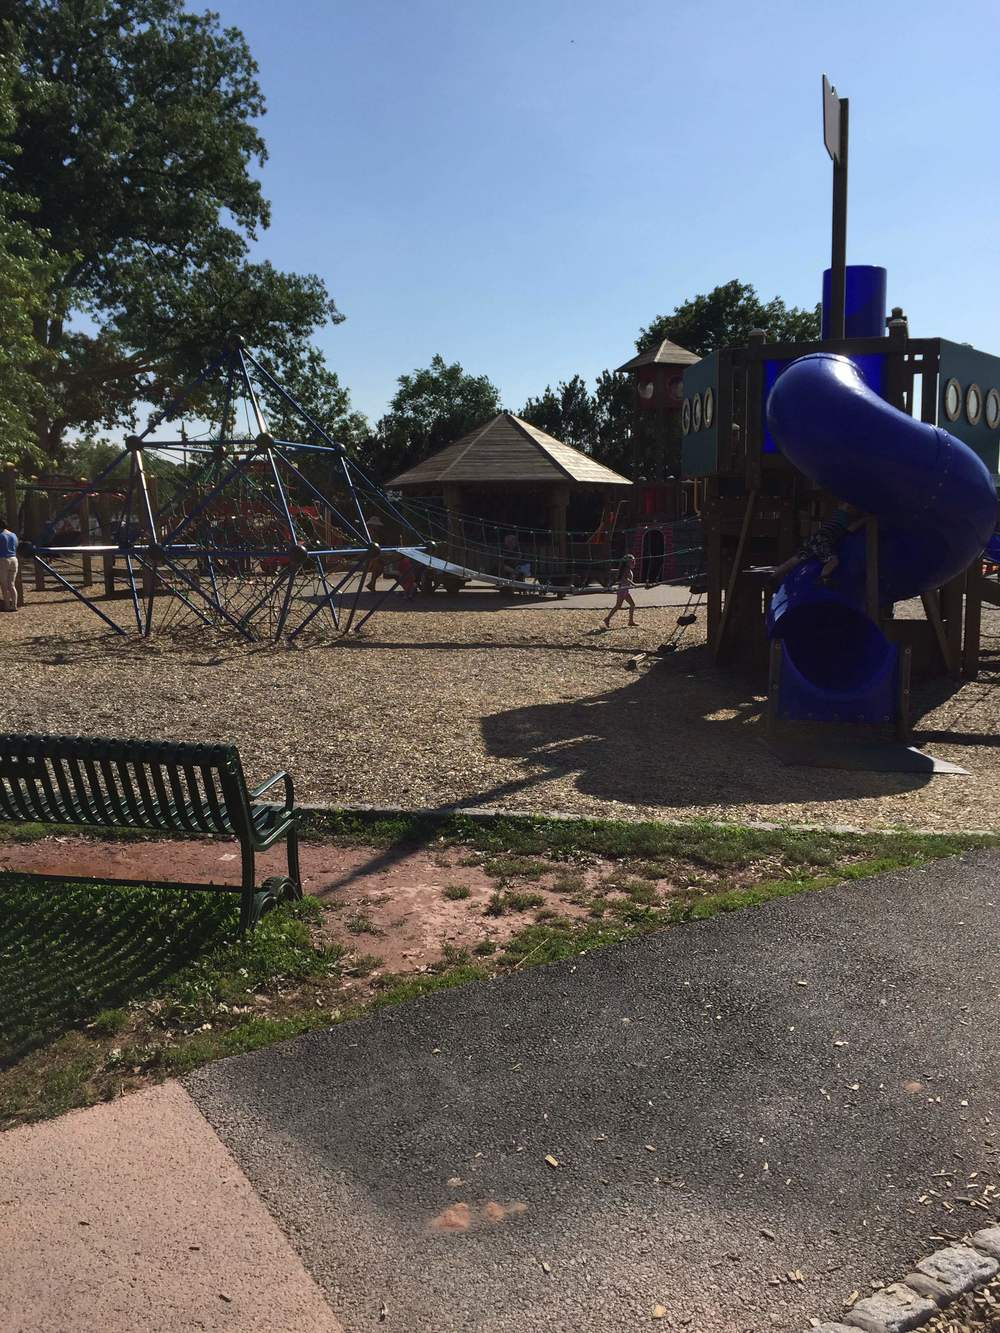 The playground set outside the beach area